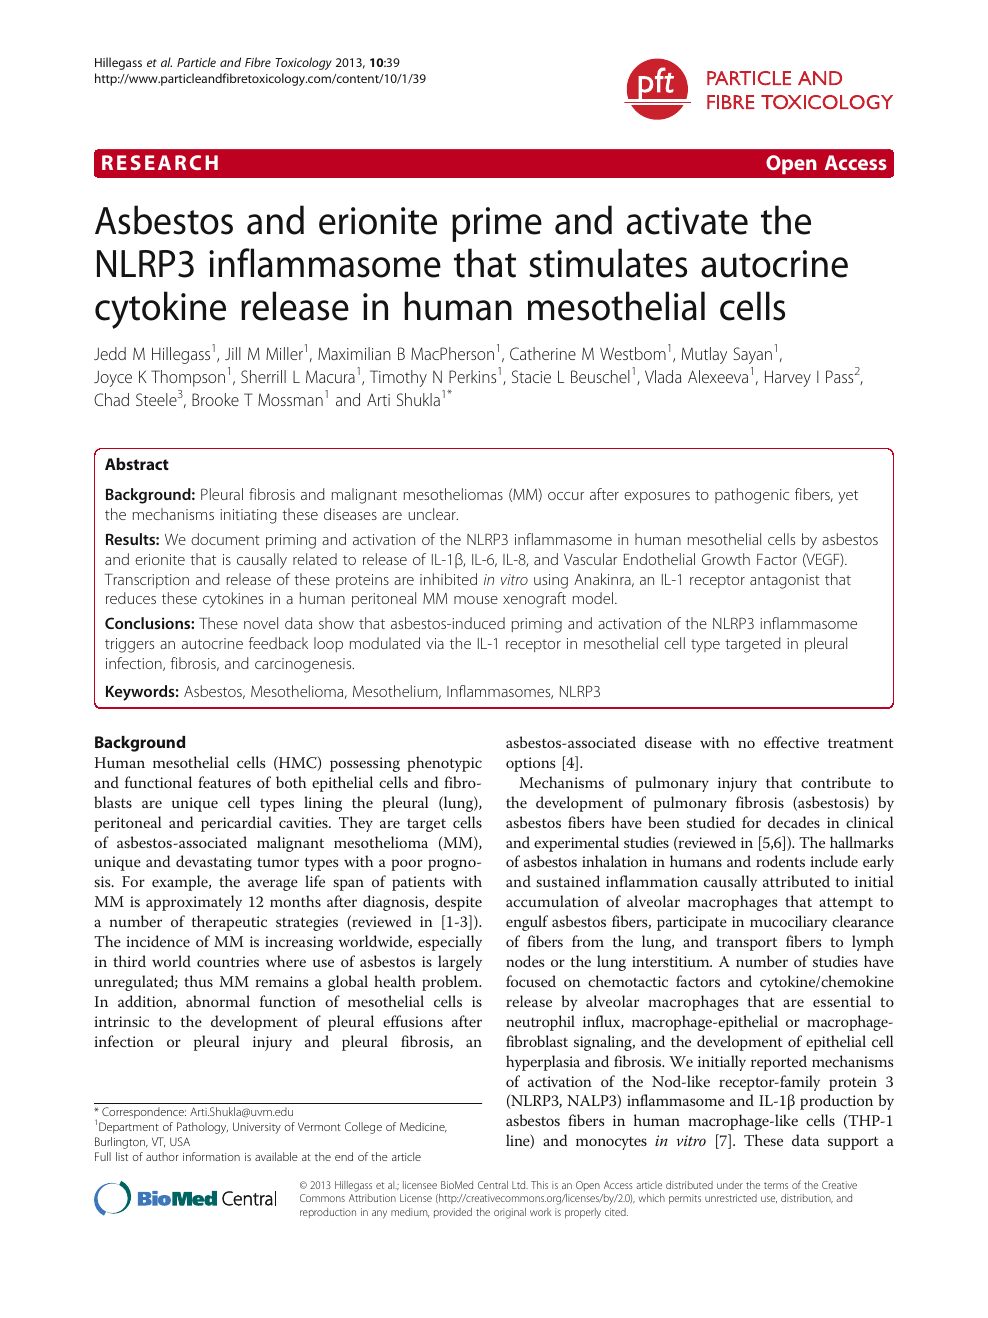 Asbestos and erionite prime and activate the NLRP3